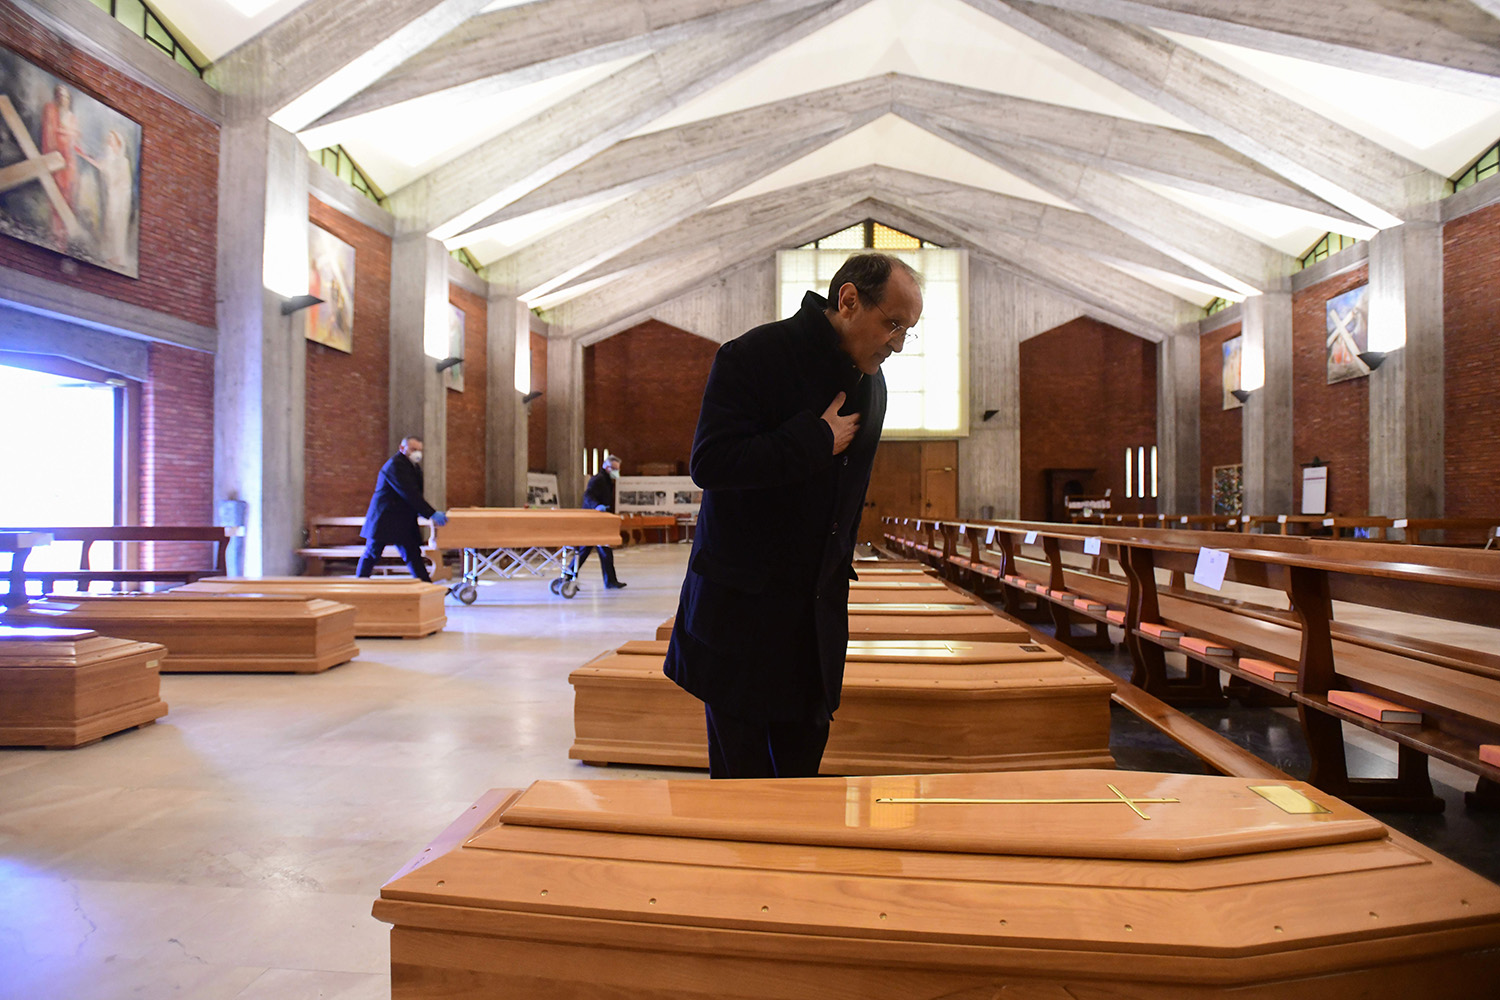 A parish priest prays over one of the coffins being stored in San Giuseppe's church in Seriate, a northern-Italian town, on March 26. PIERO CRUCIATTI/AFP via Getty Images